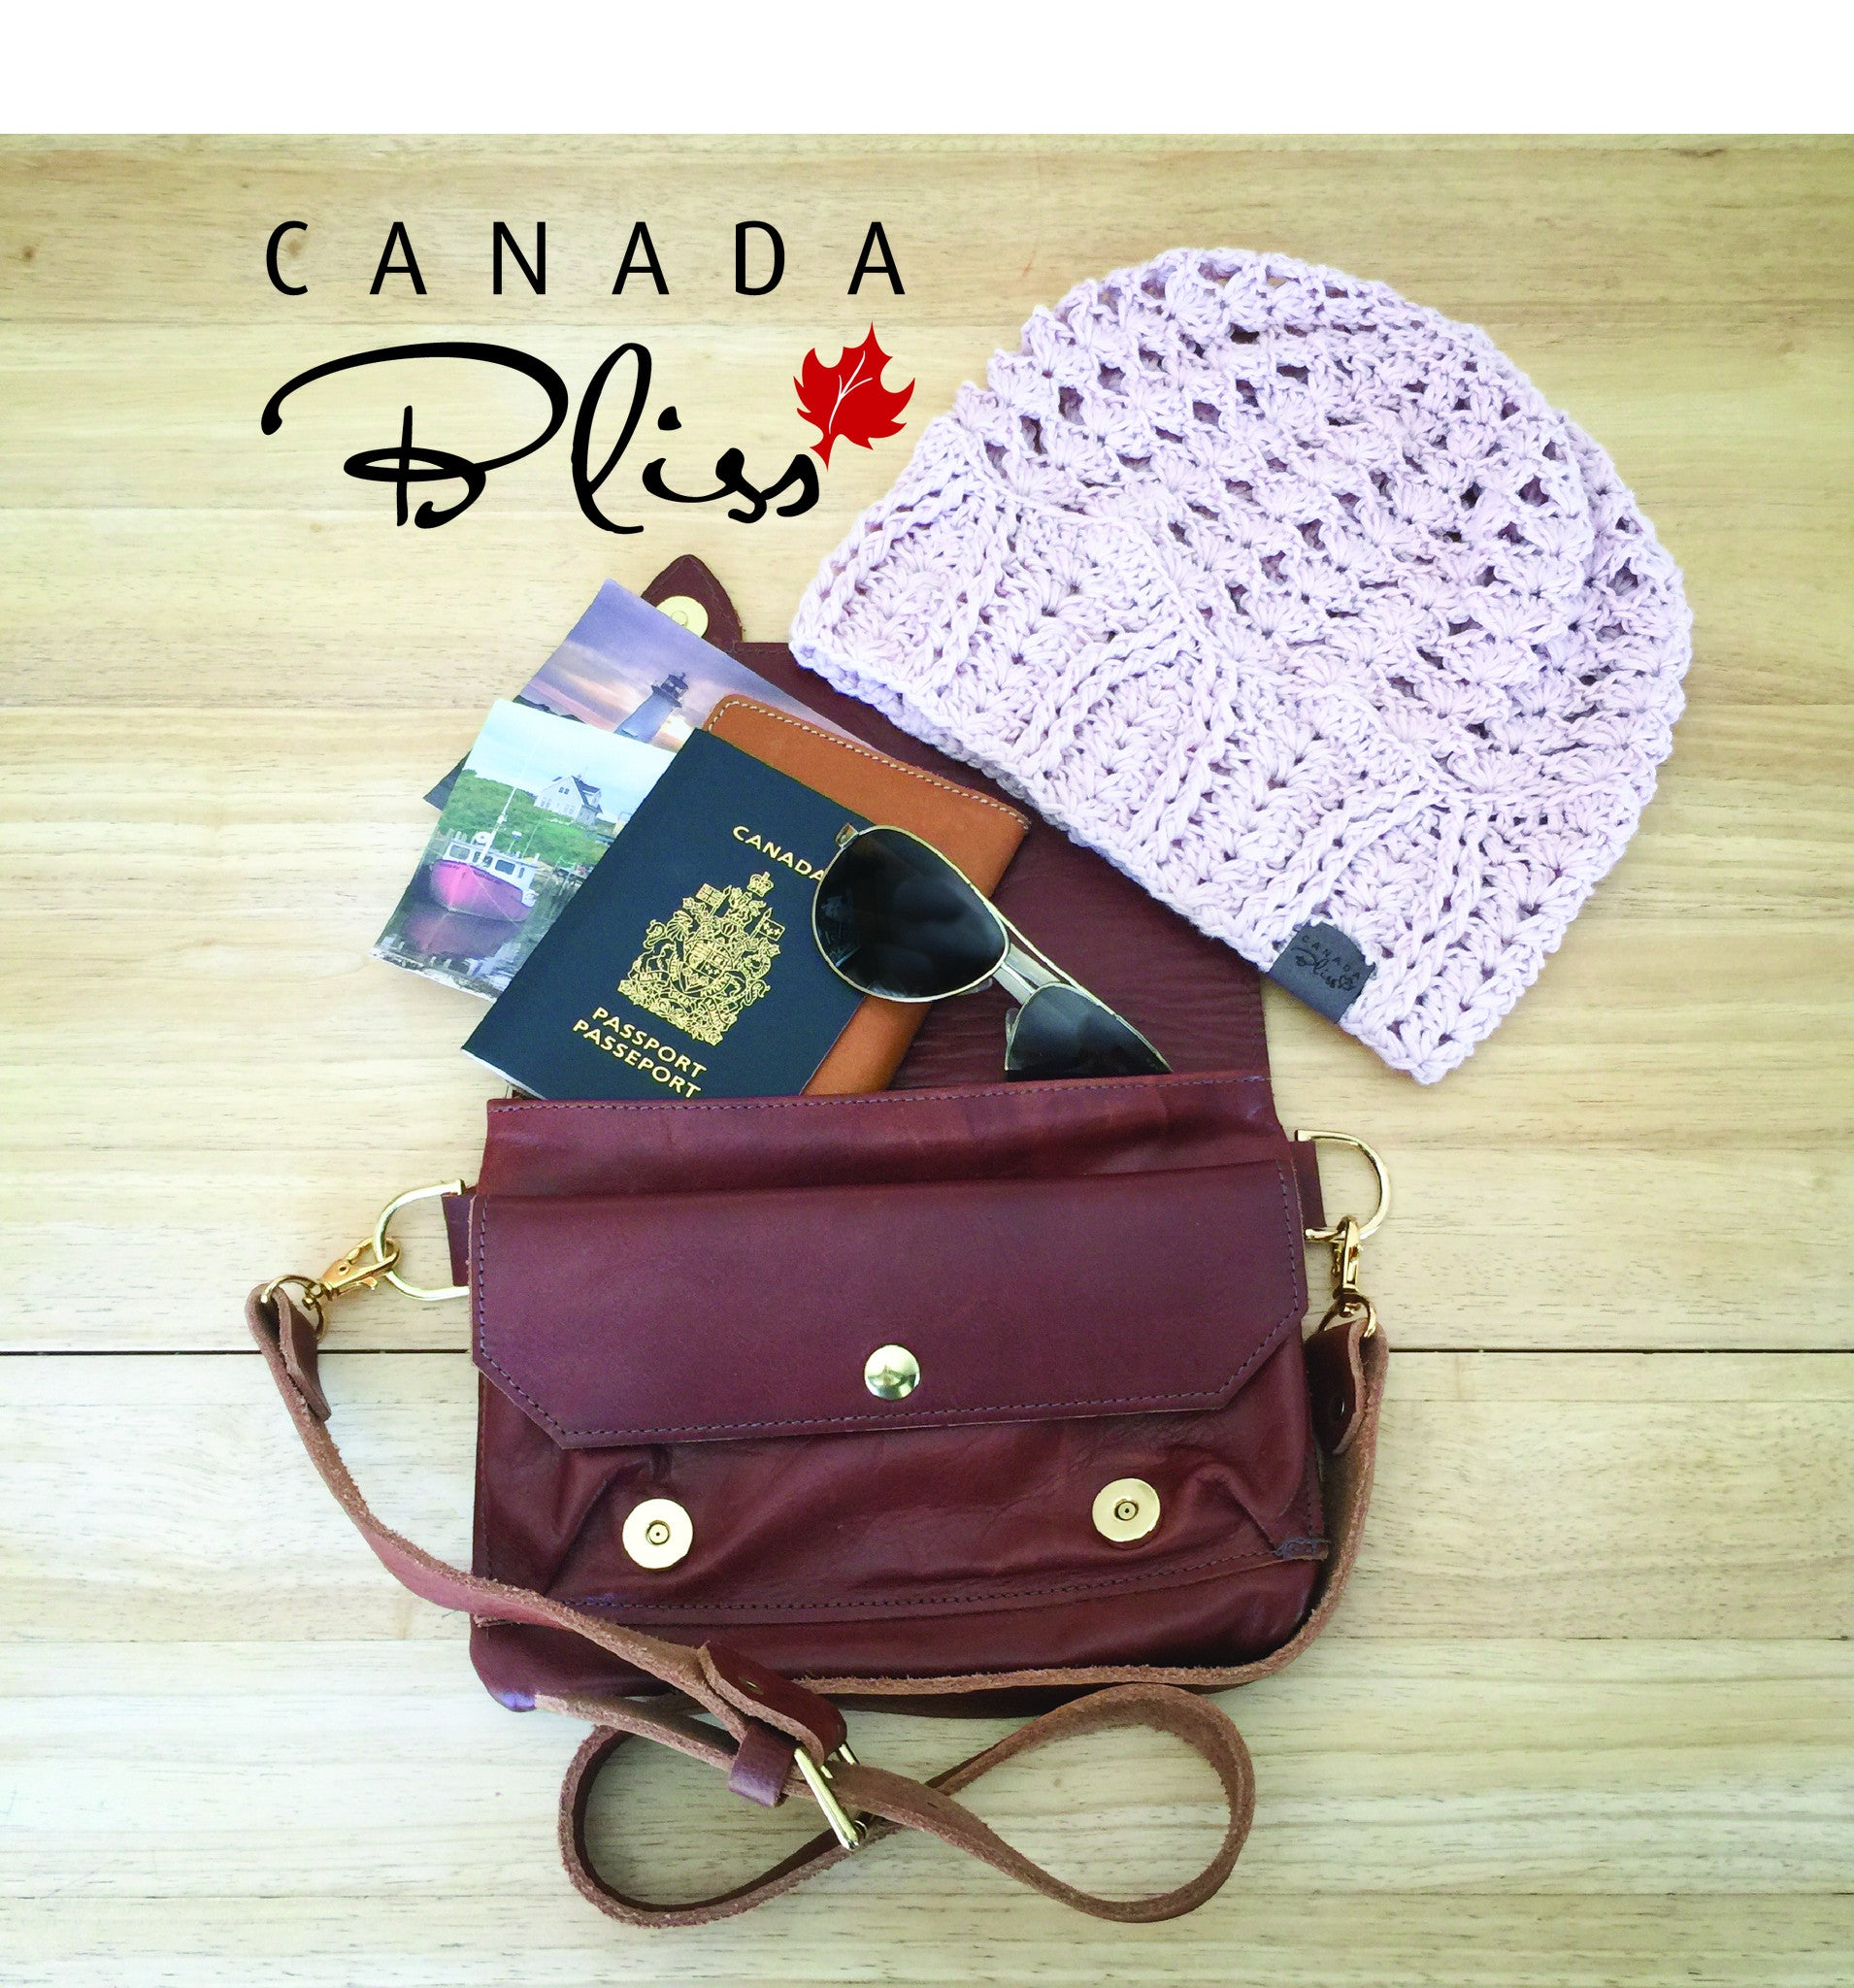 CANADA BLISS AND PORTER ESCAPES PROMOTE CANADIAN TRAVEL AND STYLE